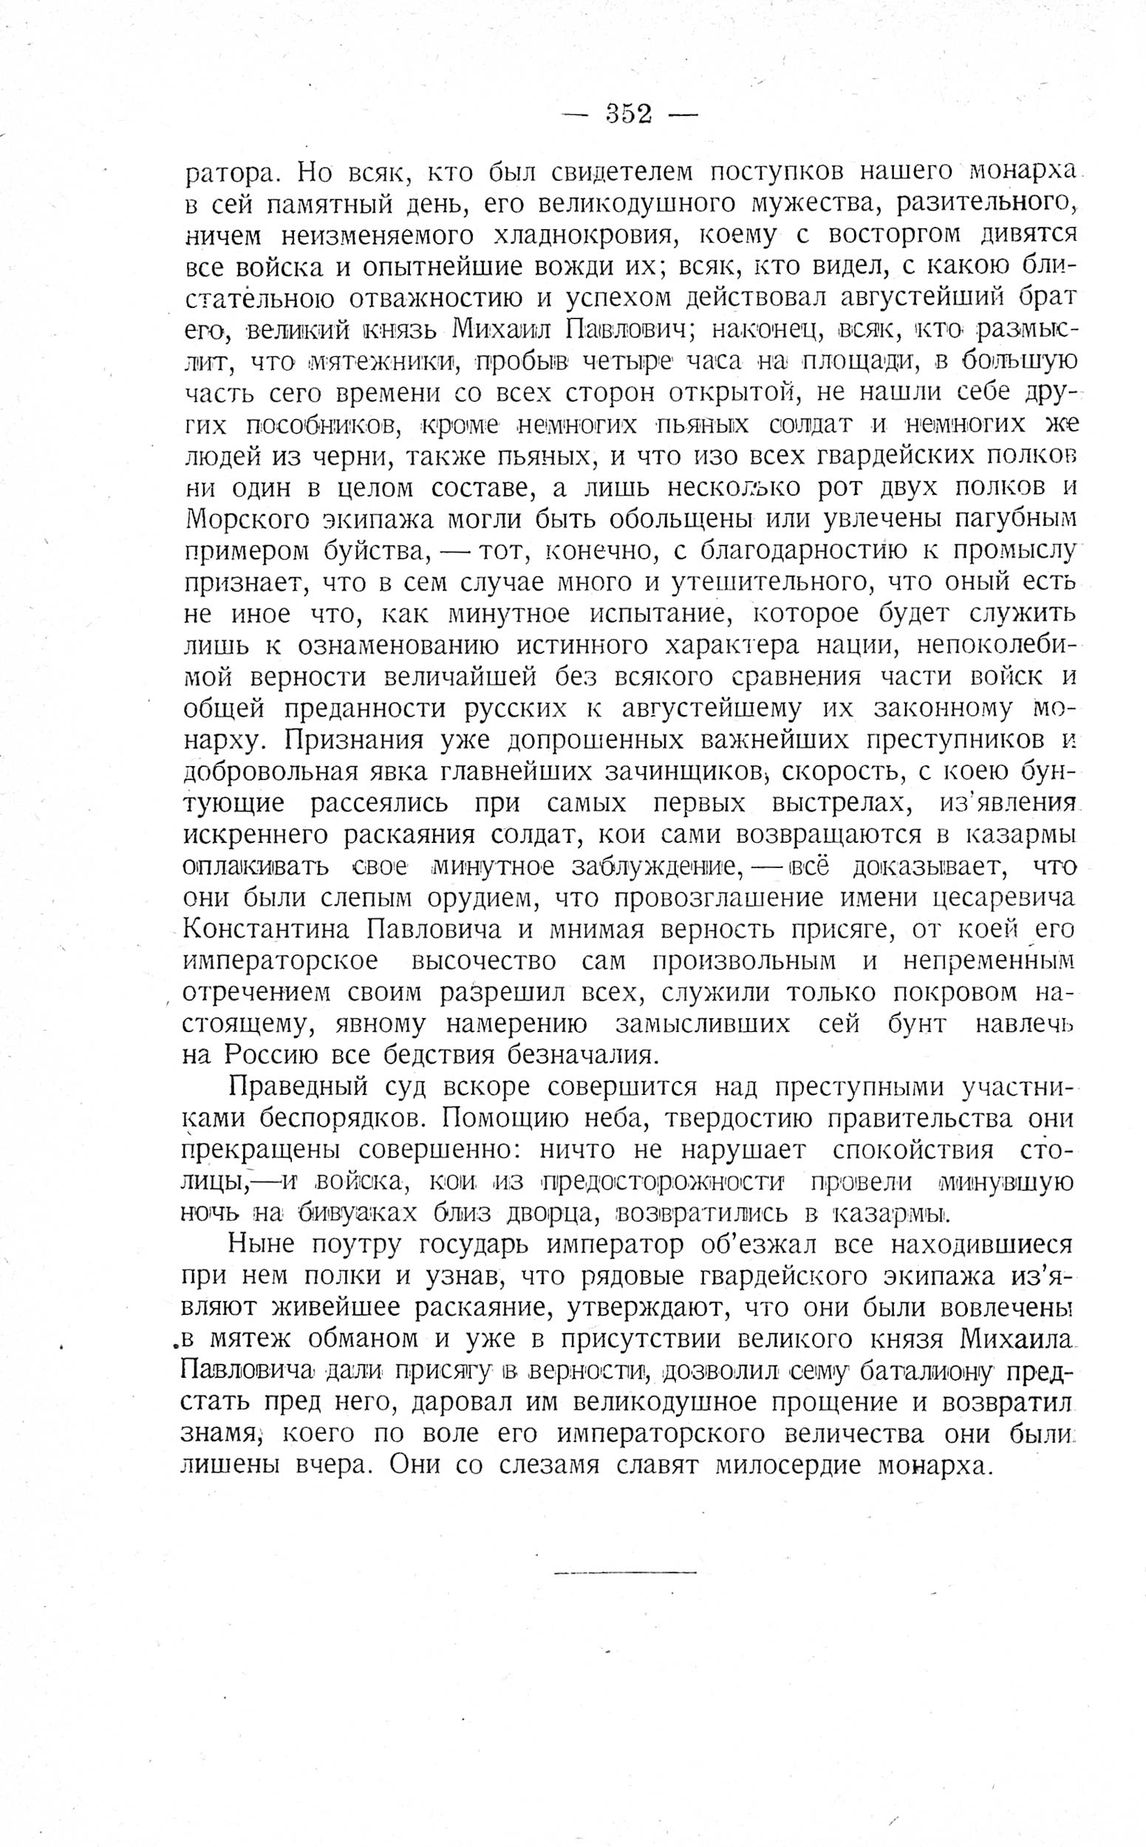 http://elib.shpl.ru/pages/625935/zooms/7